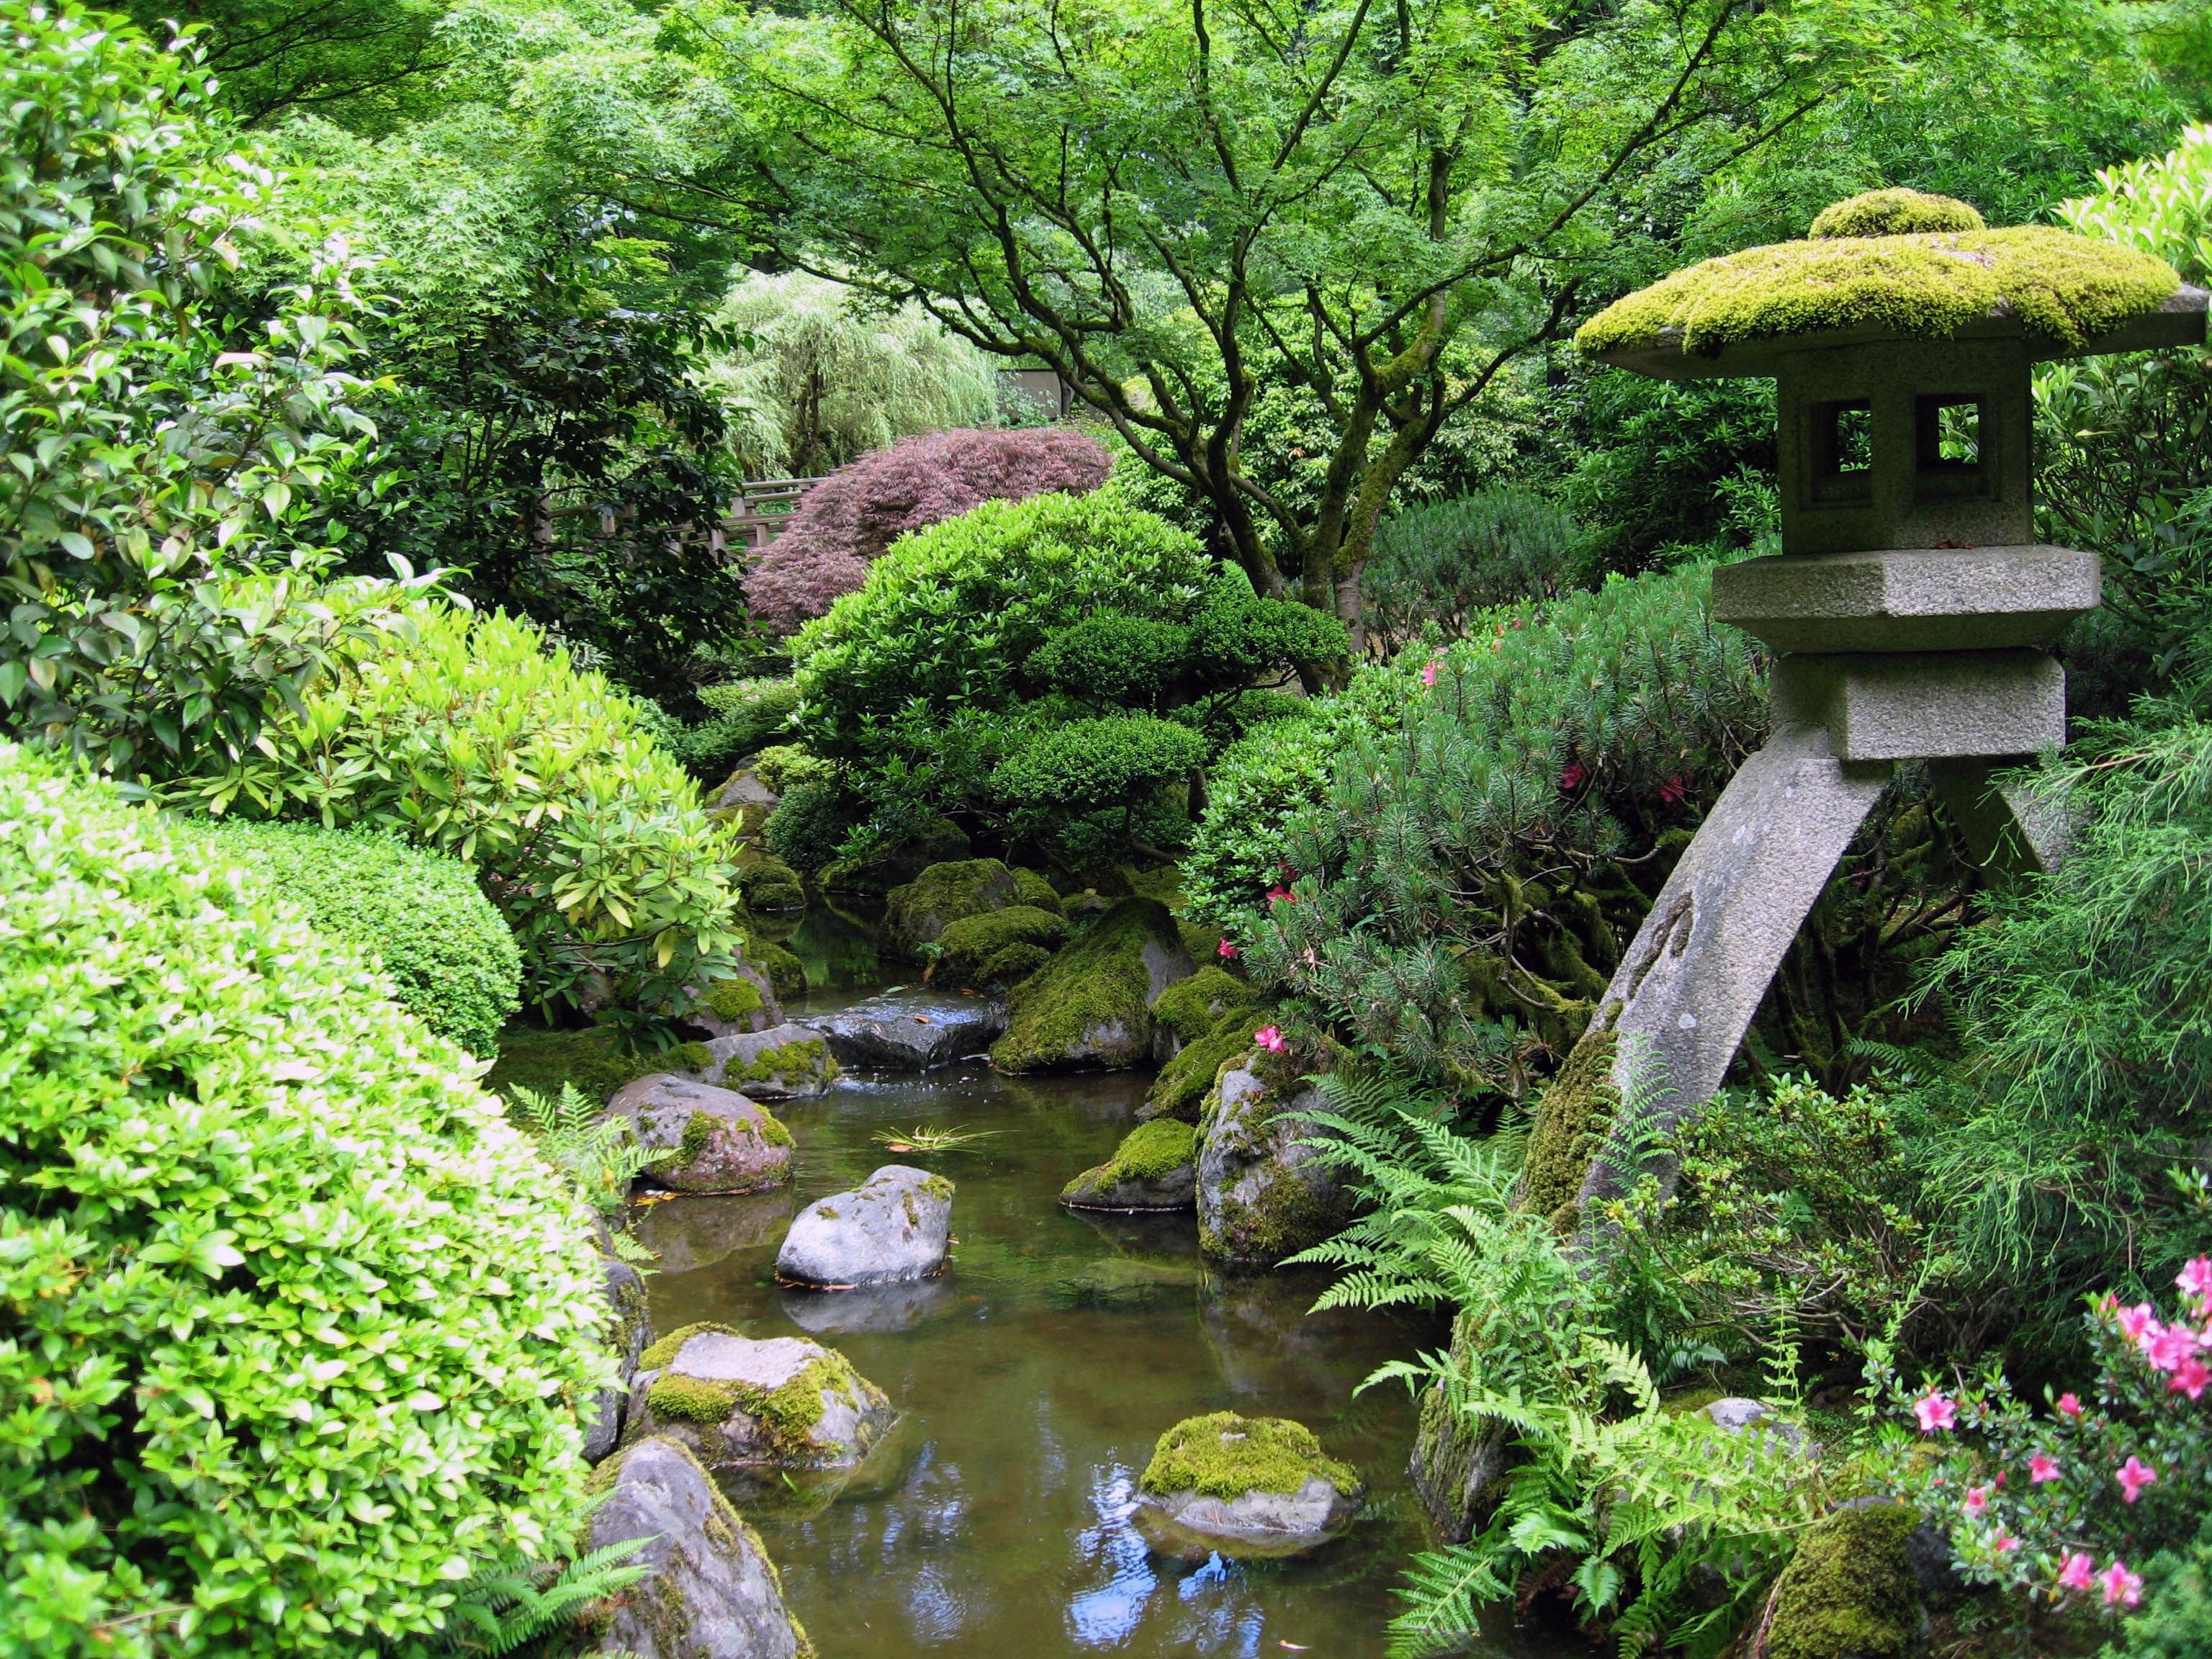 A Haven Of Tranquil Beauty The Portland Japanese Garden Is A Very Relaxing Park In Oregon In 2020 Portland Japanese Garden Japanese Garden Japanese Garden Design